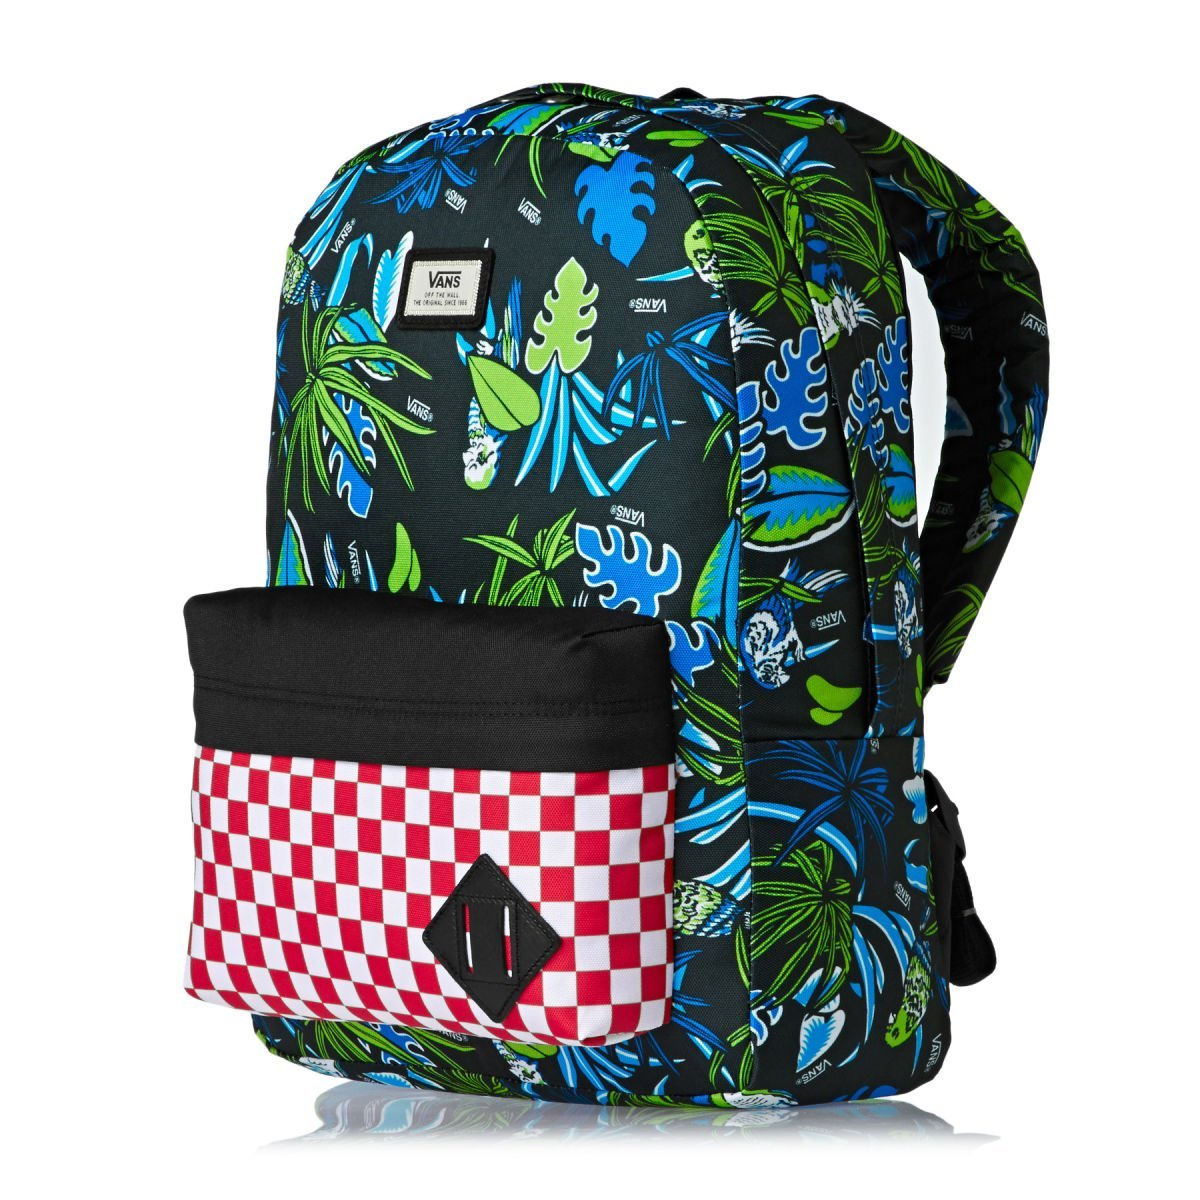 Vans Backpacks - Vans Old Skool II Backpack - Van Doren